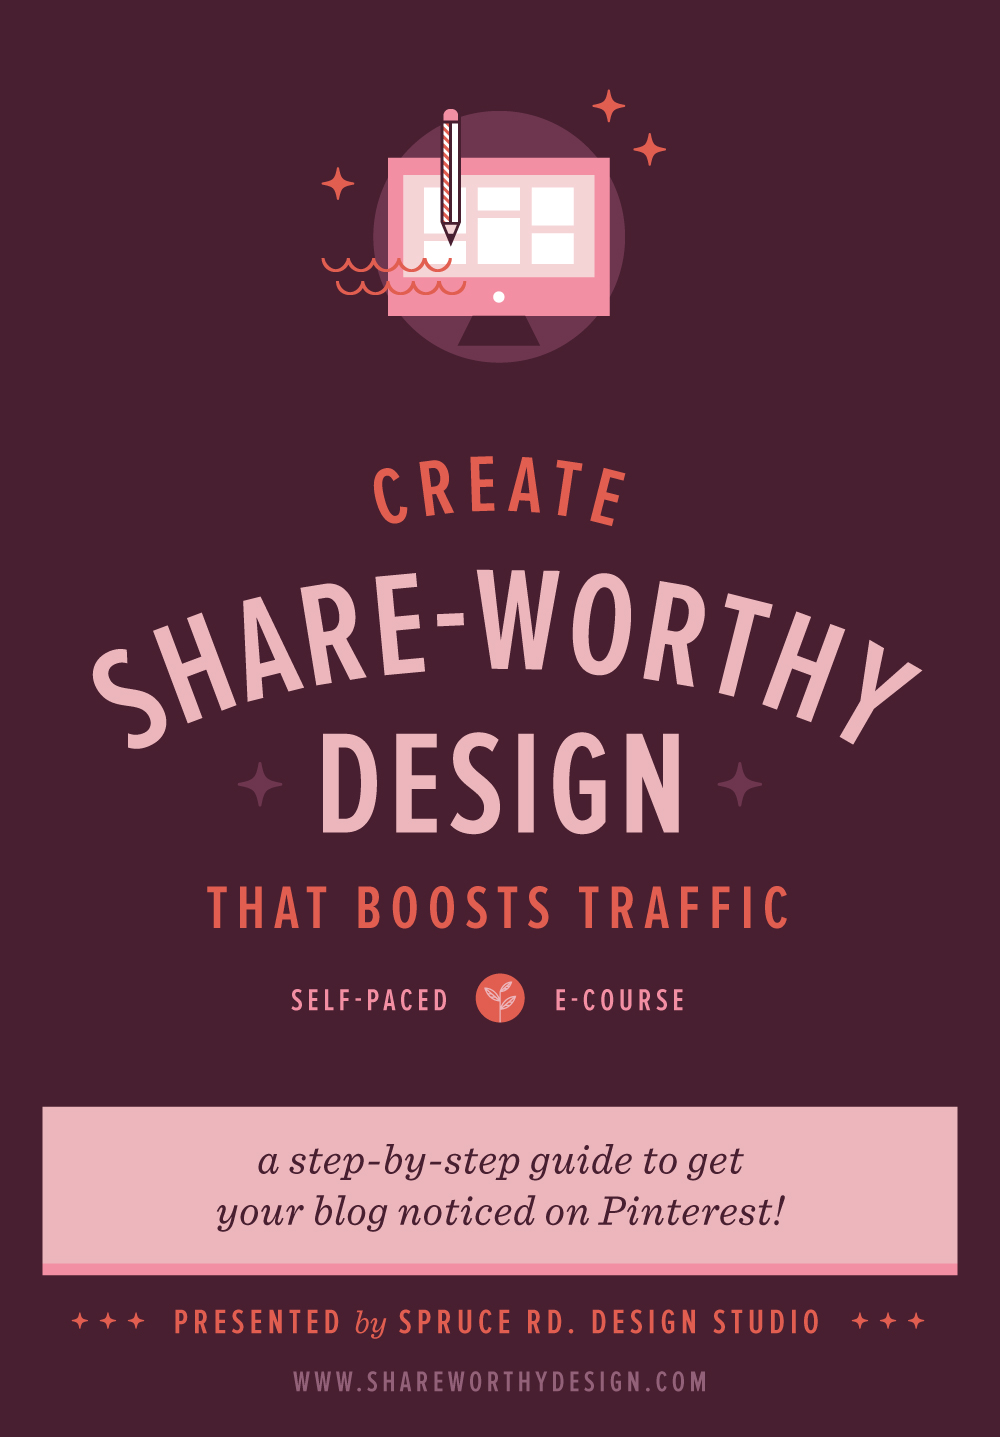 Create Share-worthy Design E-course | Spruce Rd.